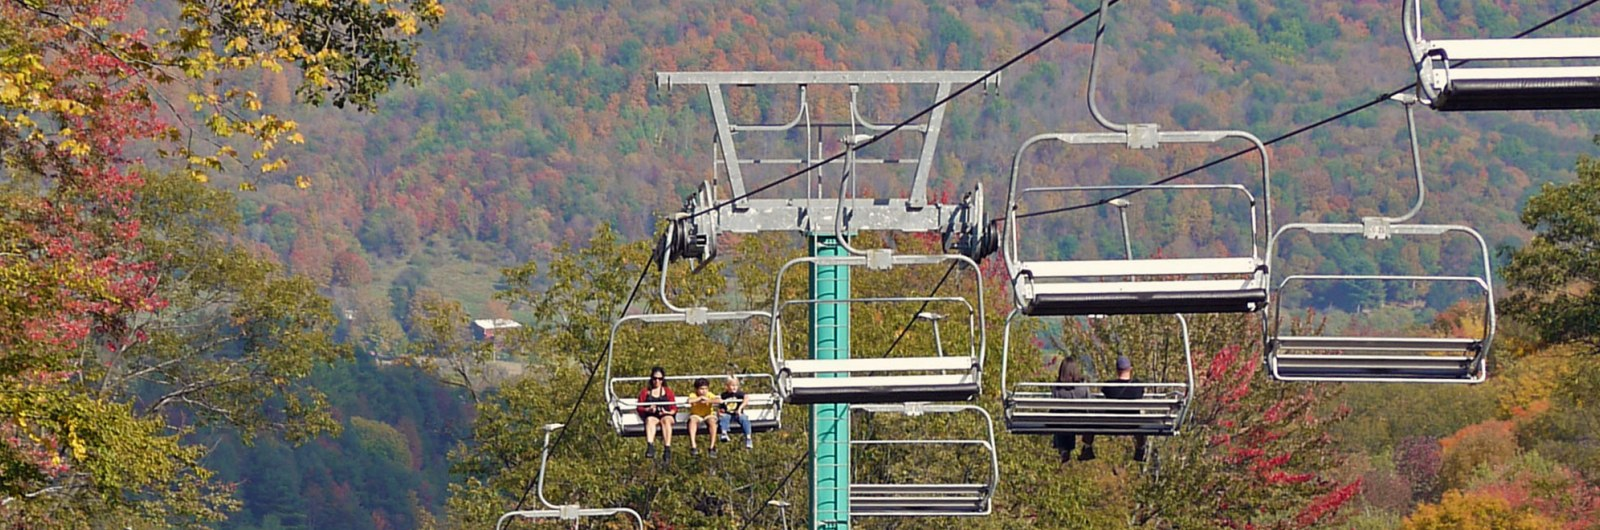 Mom with two children on chairlift ride during fall day